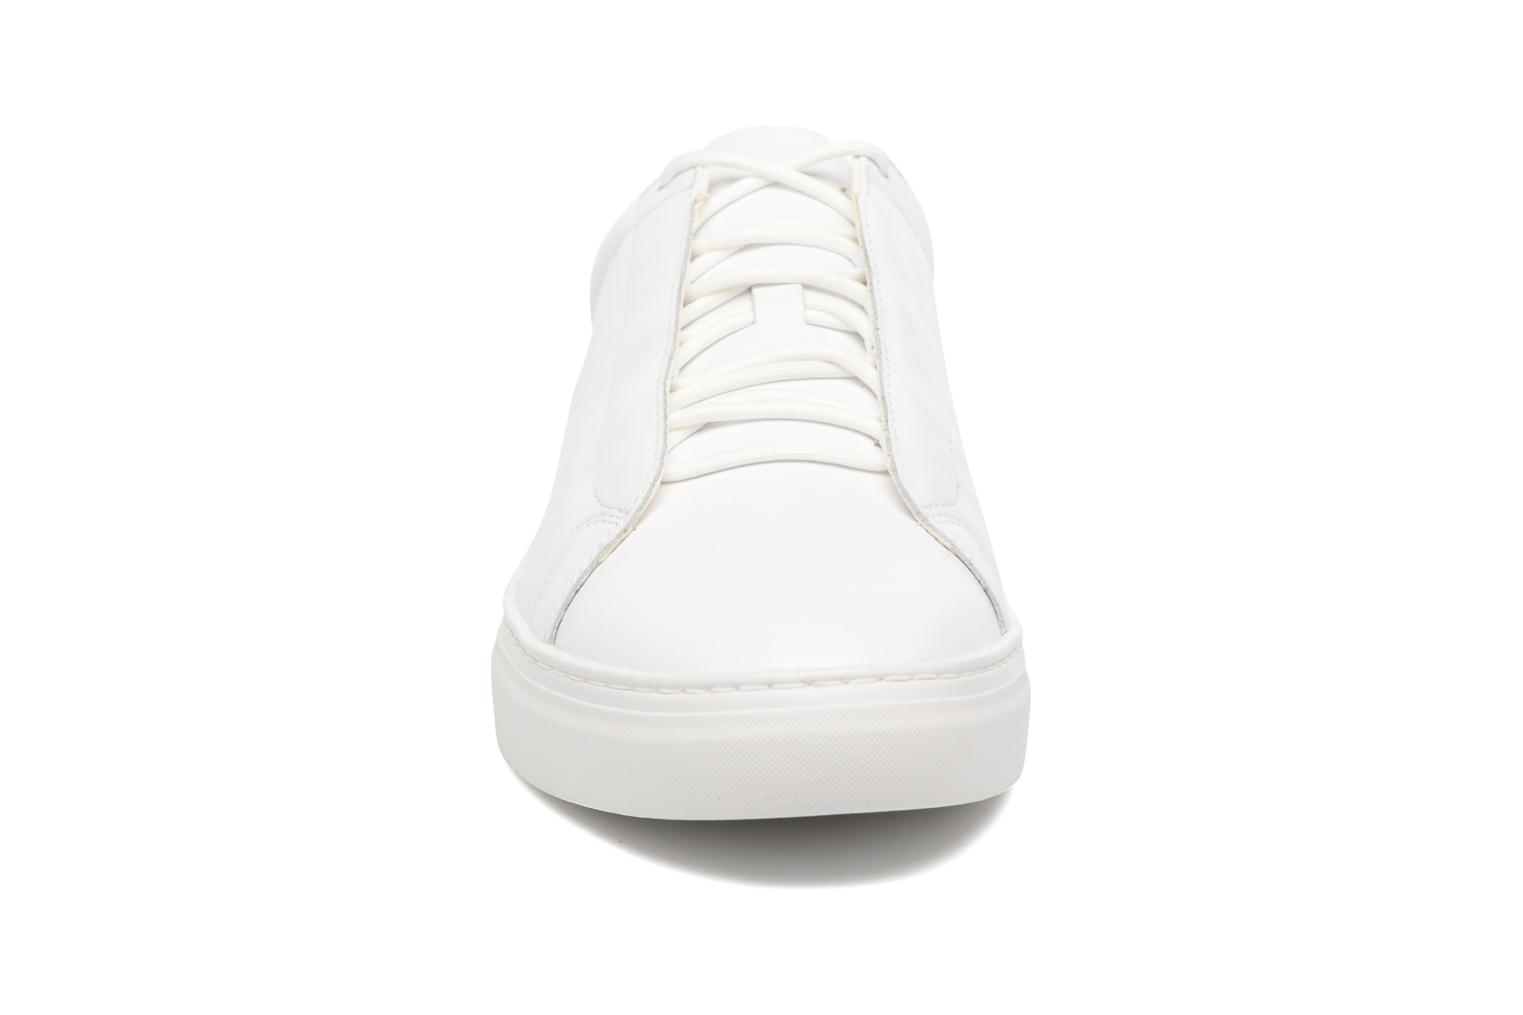 Paul 4383-201 Leather White